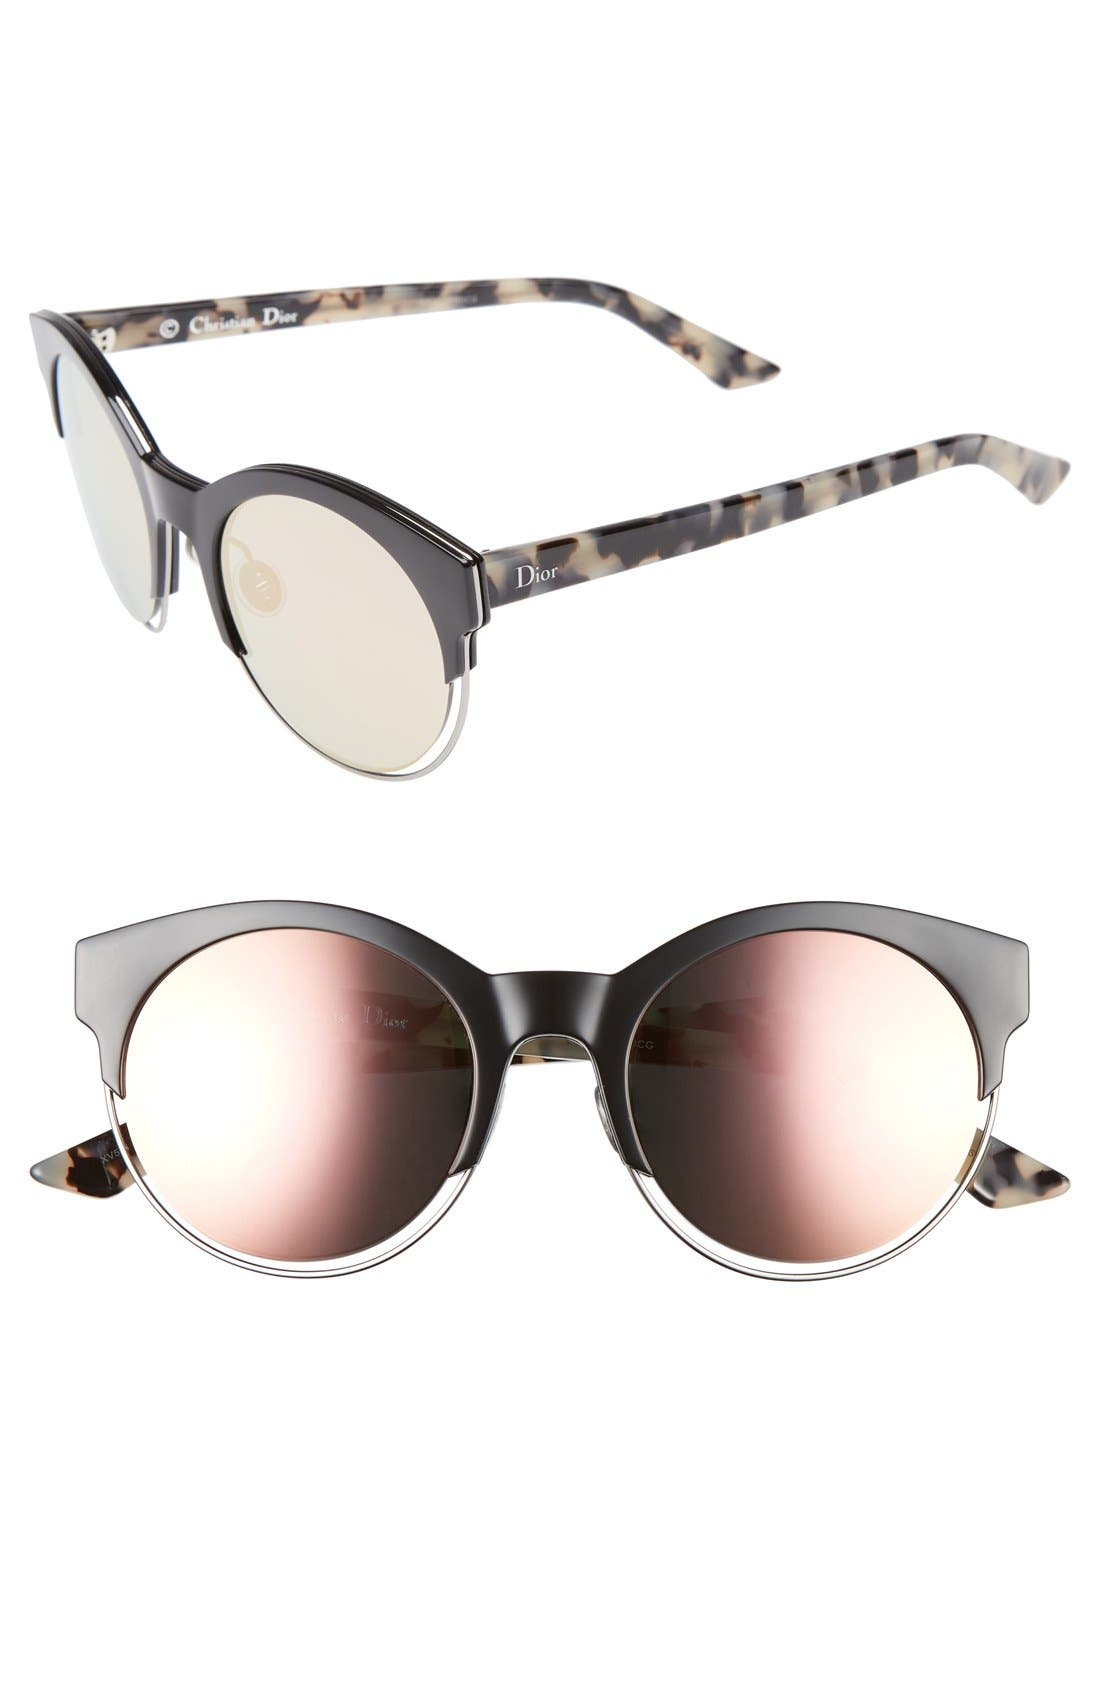 Siderall 1 53mm Round Sunglasses,                             Main thumbnail 3, color,